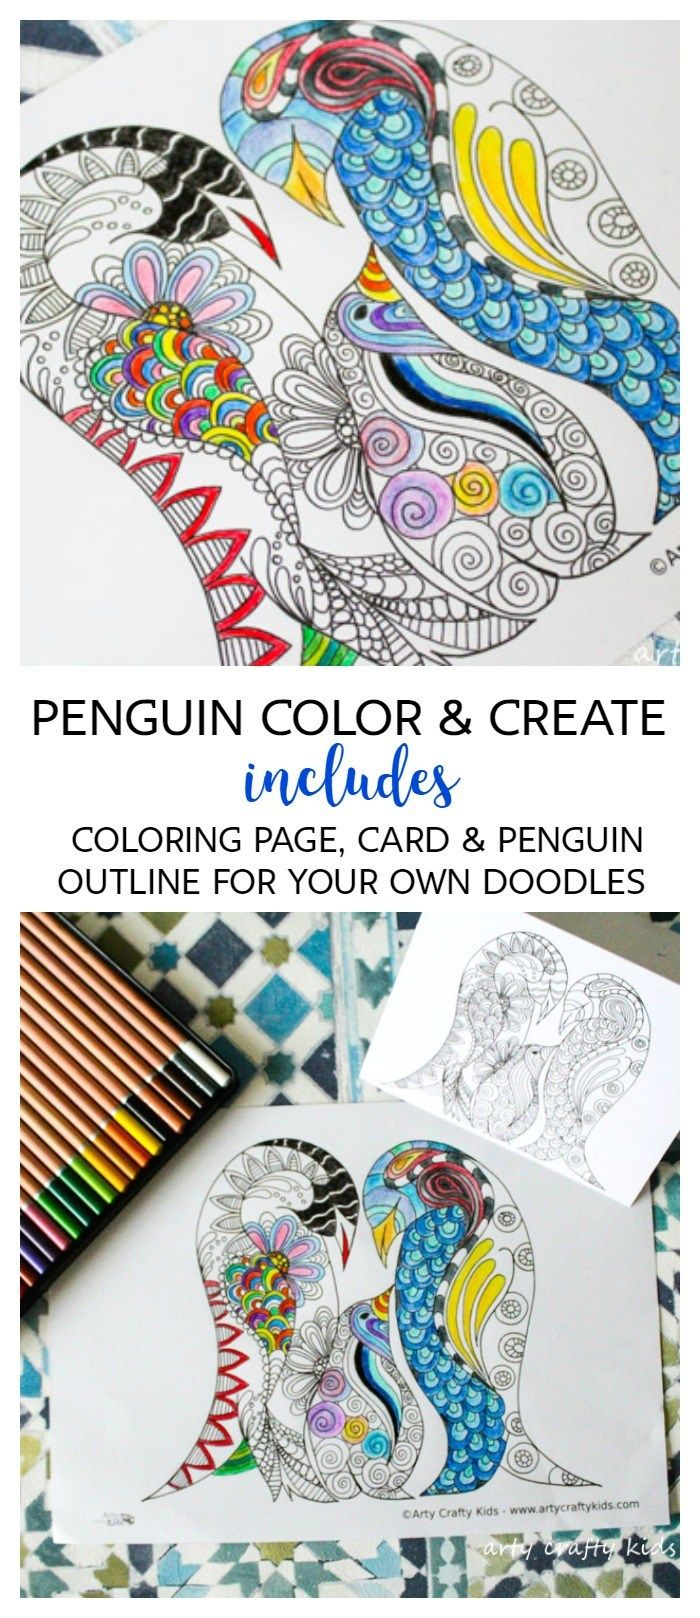 The zoology coloring book - Arty Crafty Kids Coloring Pages Penguin Color And Create Page Free Penguin Coloring